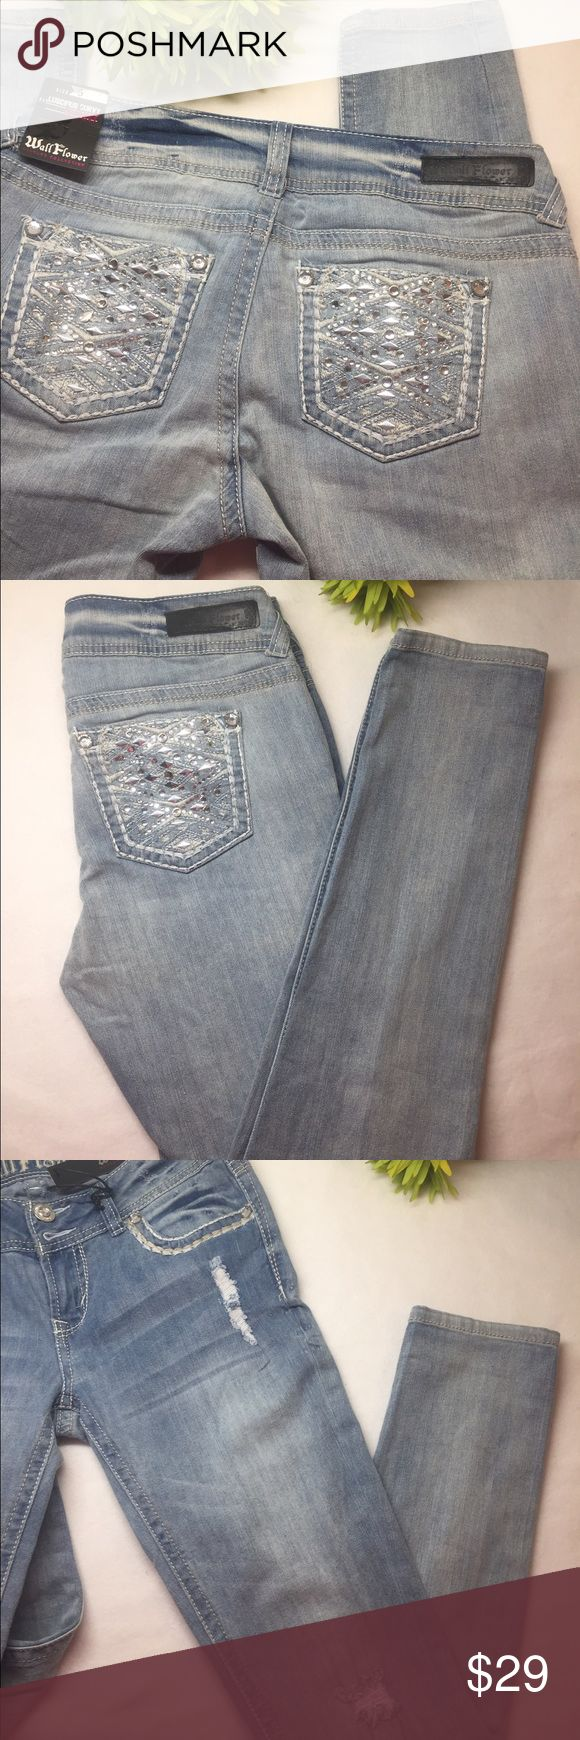 "Embellished/Distressed Skinny Jeans Showcase your sassy sense of style with these Junior's Wallflower curvy skinny jeans. Light blue wash with silver embellishments on back pockets; stitching around from pockets and distressed front provides the ultimate glam to any ensemble.  *Featured in light blue wash *Slight stretch  *5-pocket; Double button fly *Contour waist band prevents gapping *Tight through knee *Made of 99% cotton; 1% spandex…Machine washable *Measurements: Waist=28""…"